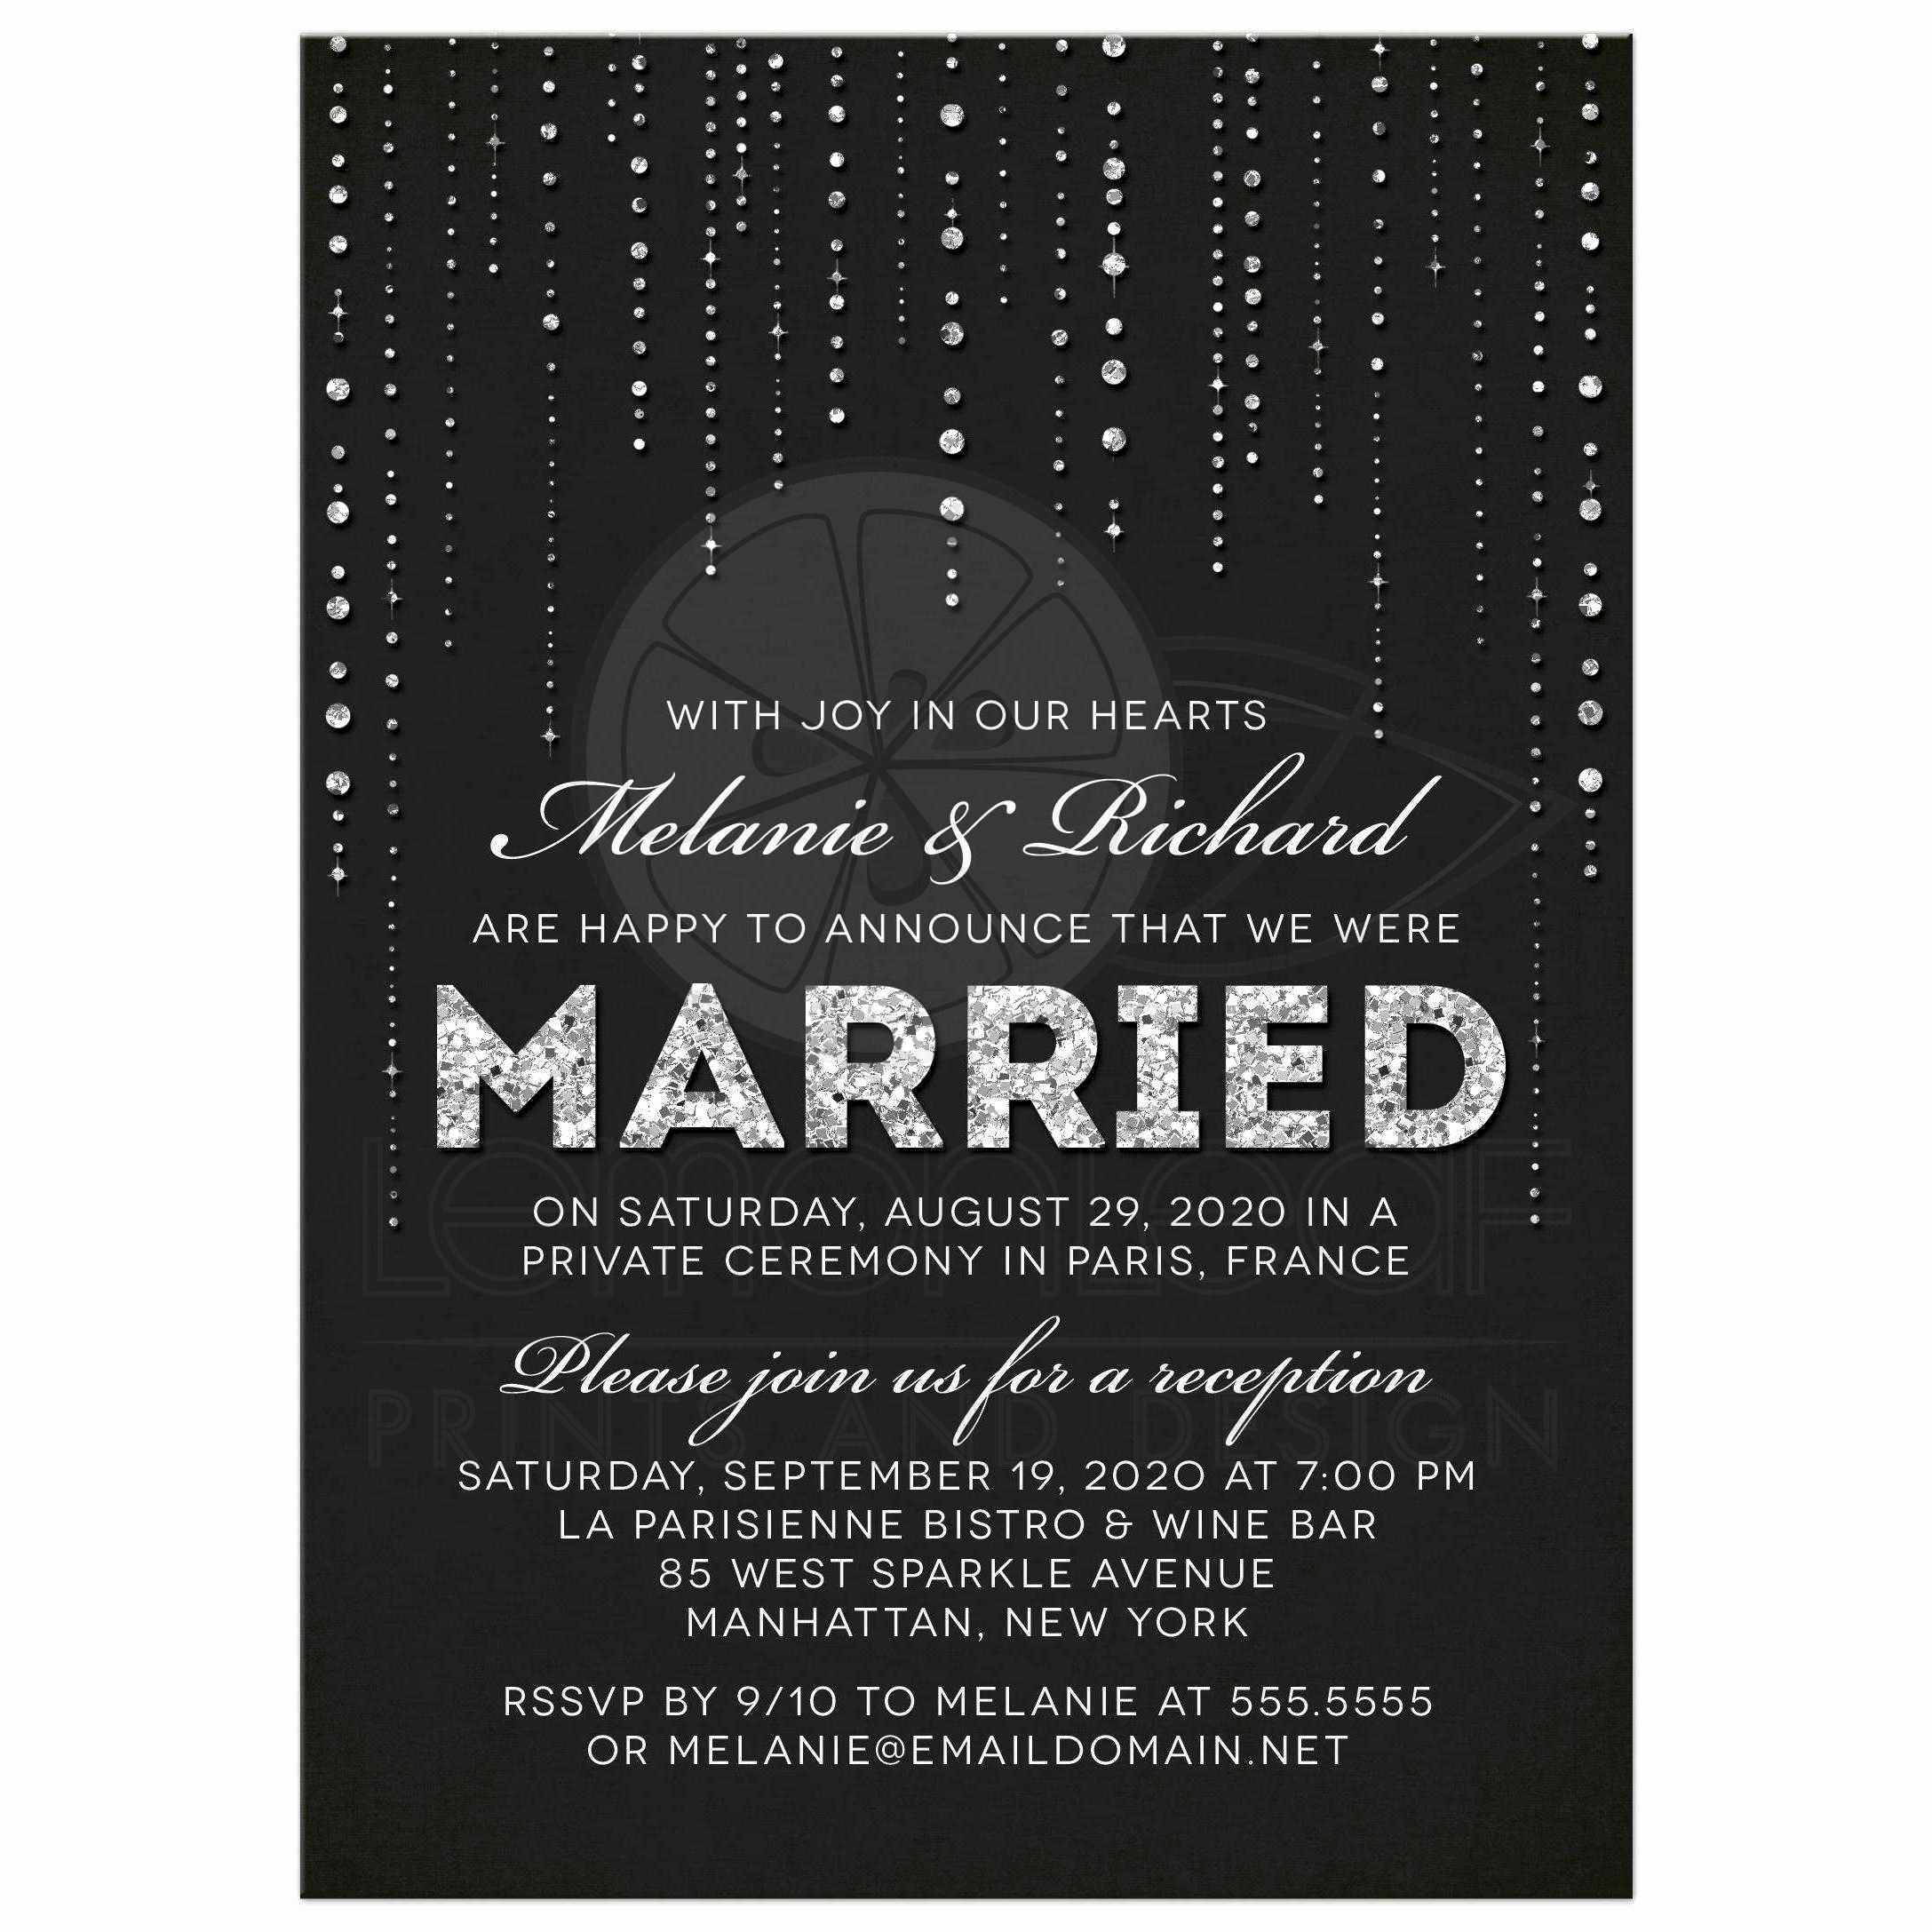 Private Wedding Ceremony Invitation Awesome Post Wedding Reception Ly Invitations Glitter Look